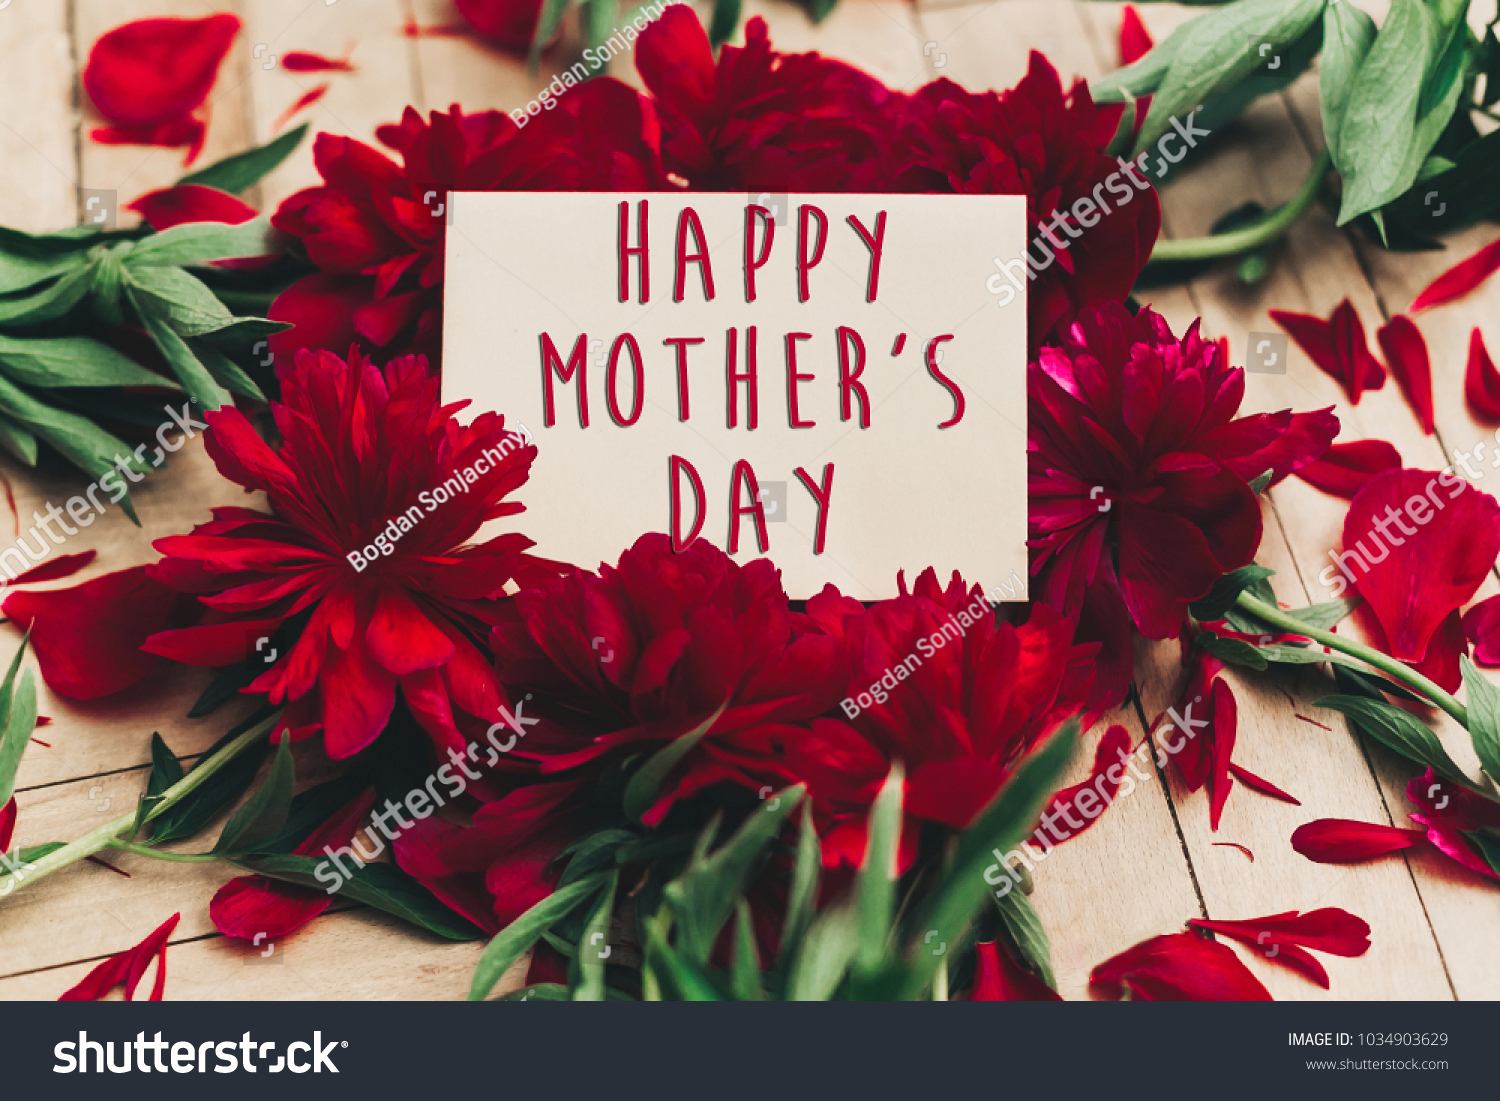 Happy mothers day text sign on stock photo 1034903629 shutterstock happy mothers day text sign on craft paper card beautiful red peonies on wooden rustic background kristyandbryce Choice Image